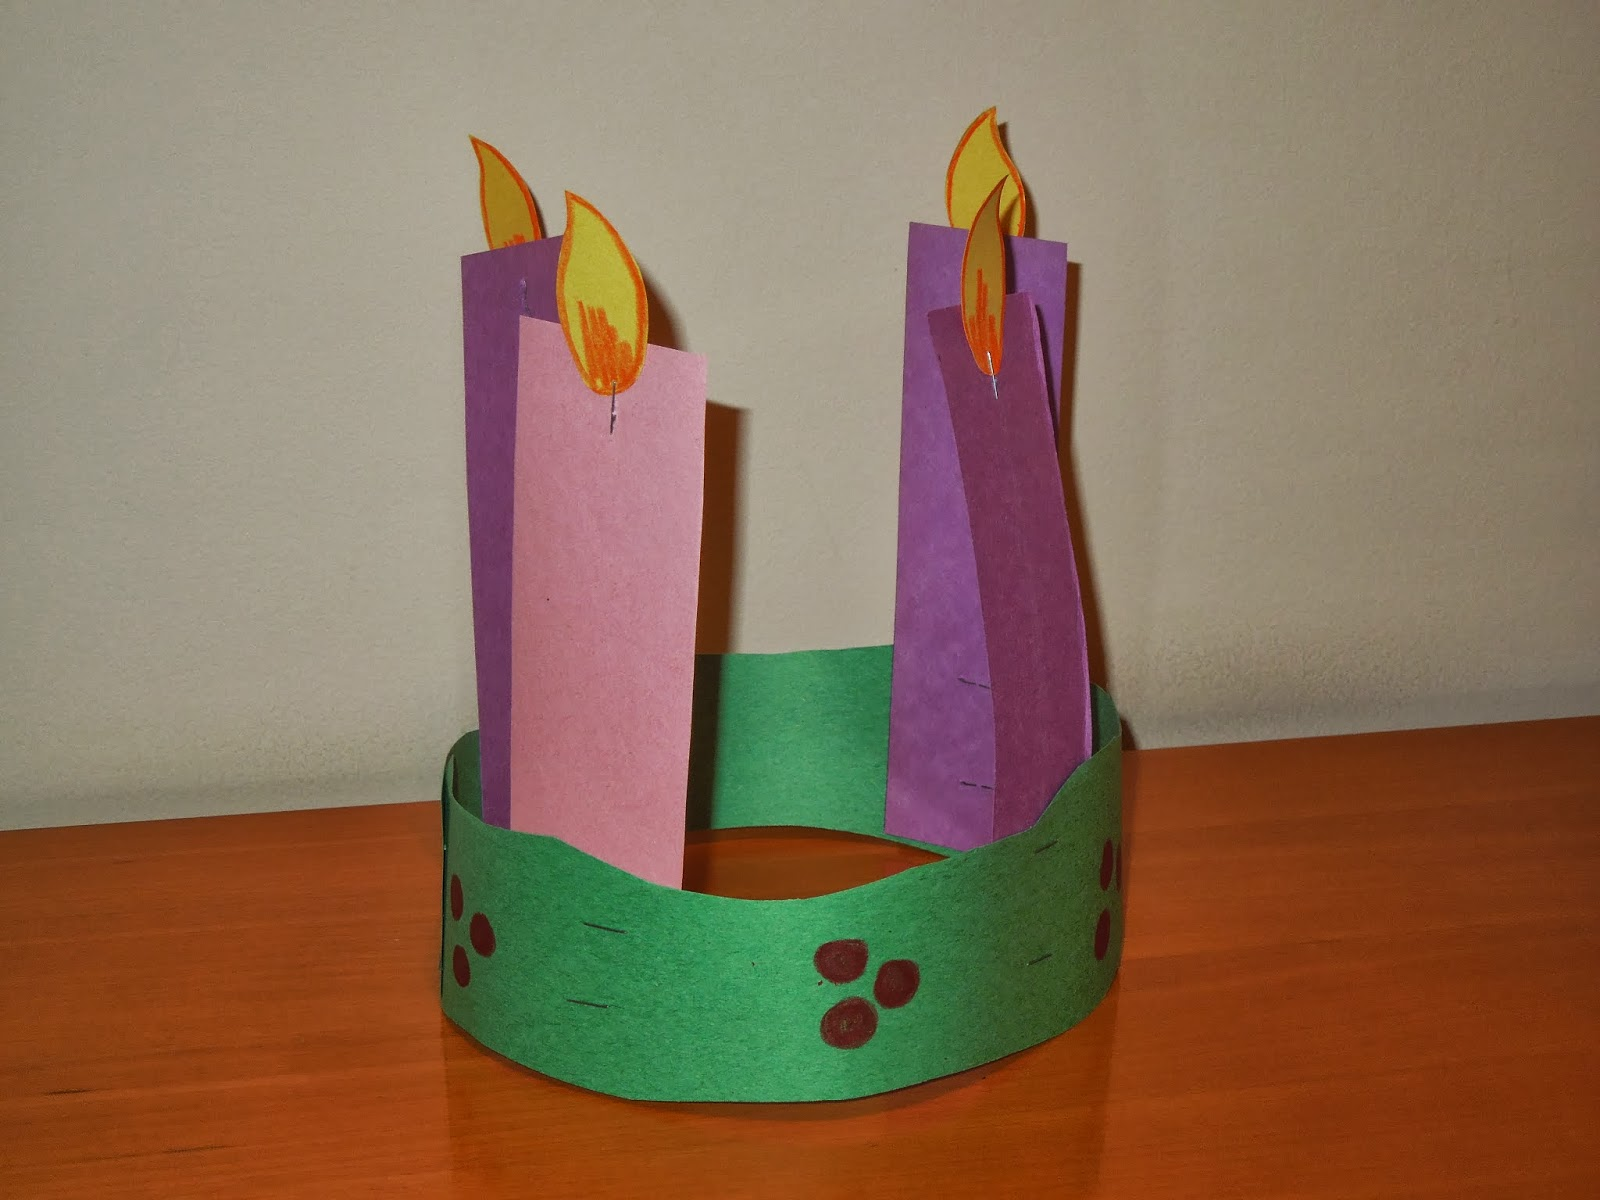 The Catholic Toolbox: Advent Wreath Link Up @ catholicmom.com